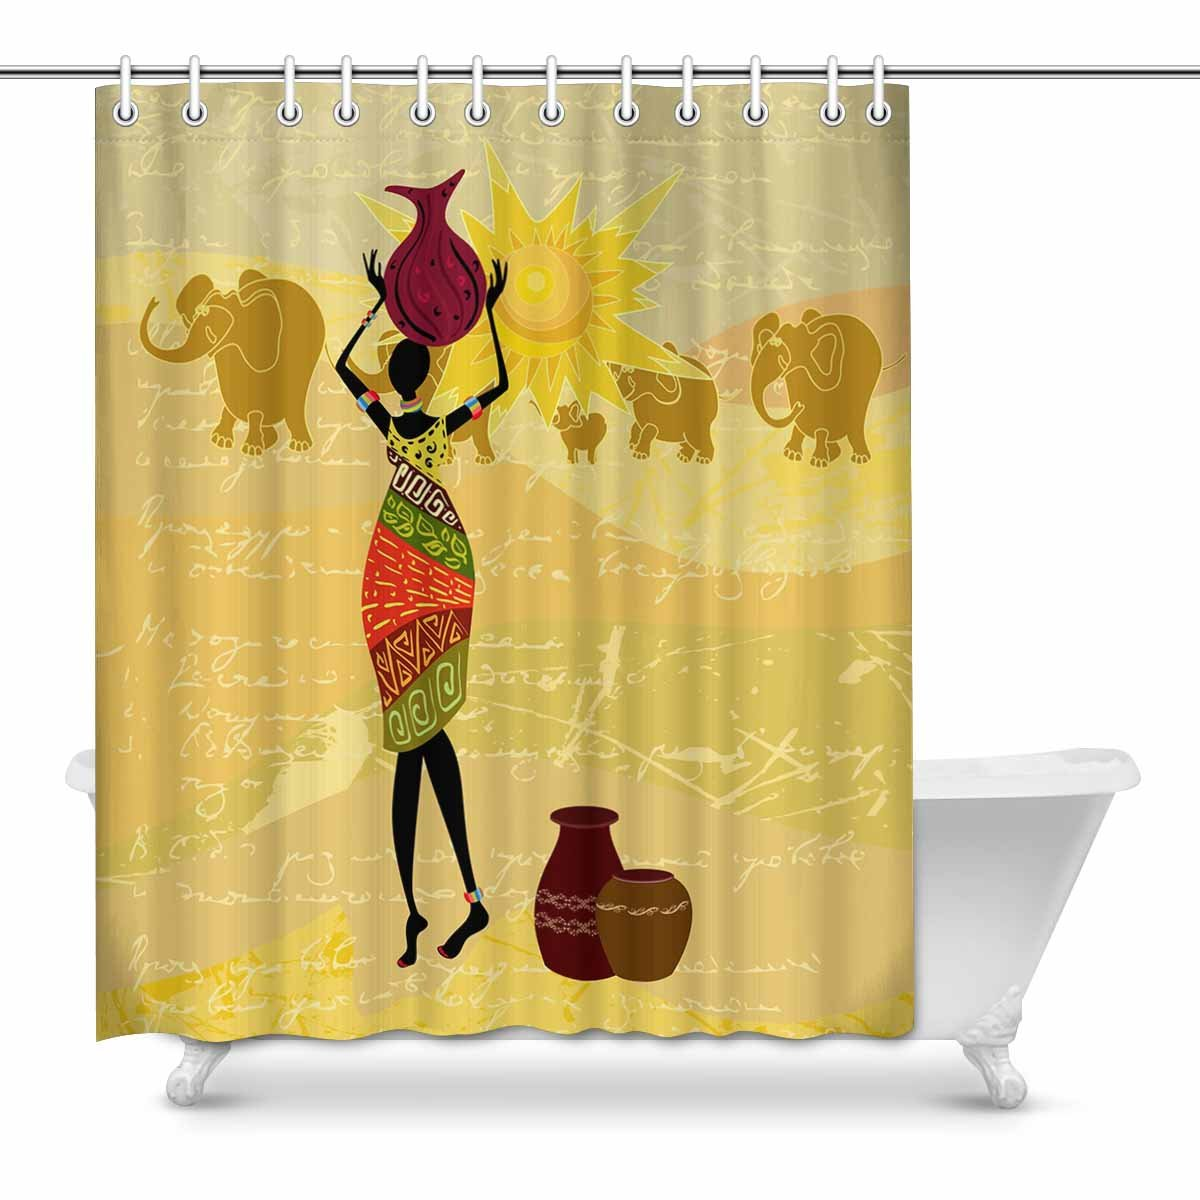 60x72 Waterproof Custom African Woman Bathroom Polyester Fabric Shower Curtain